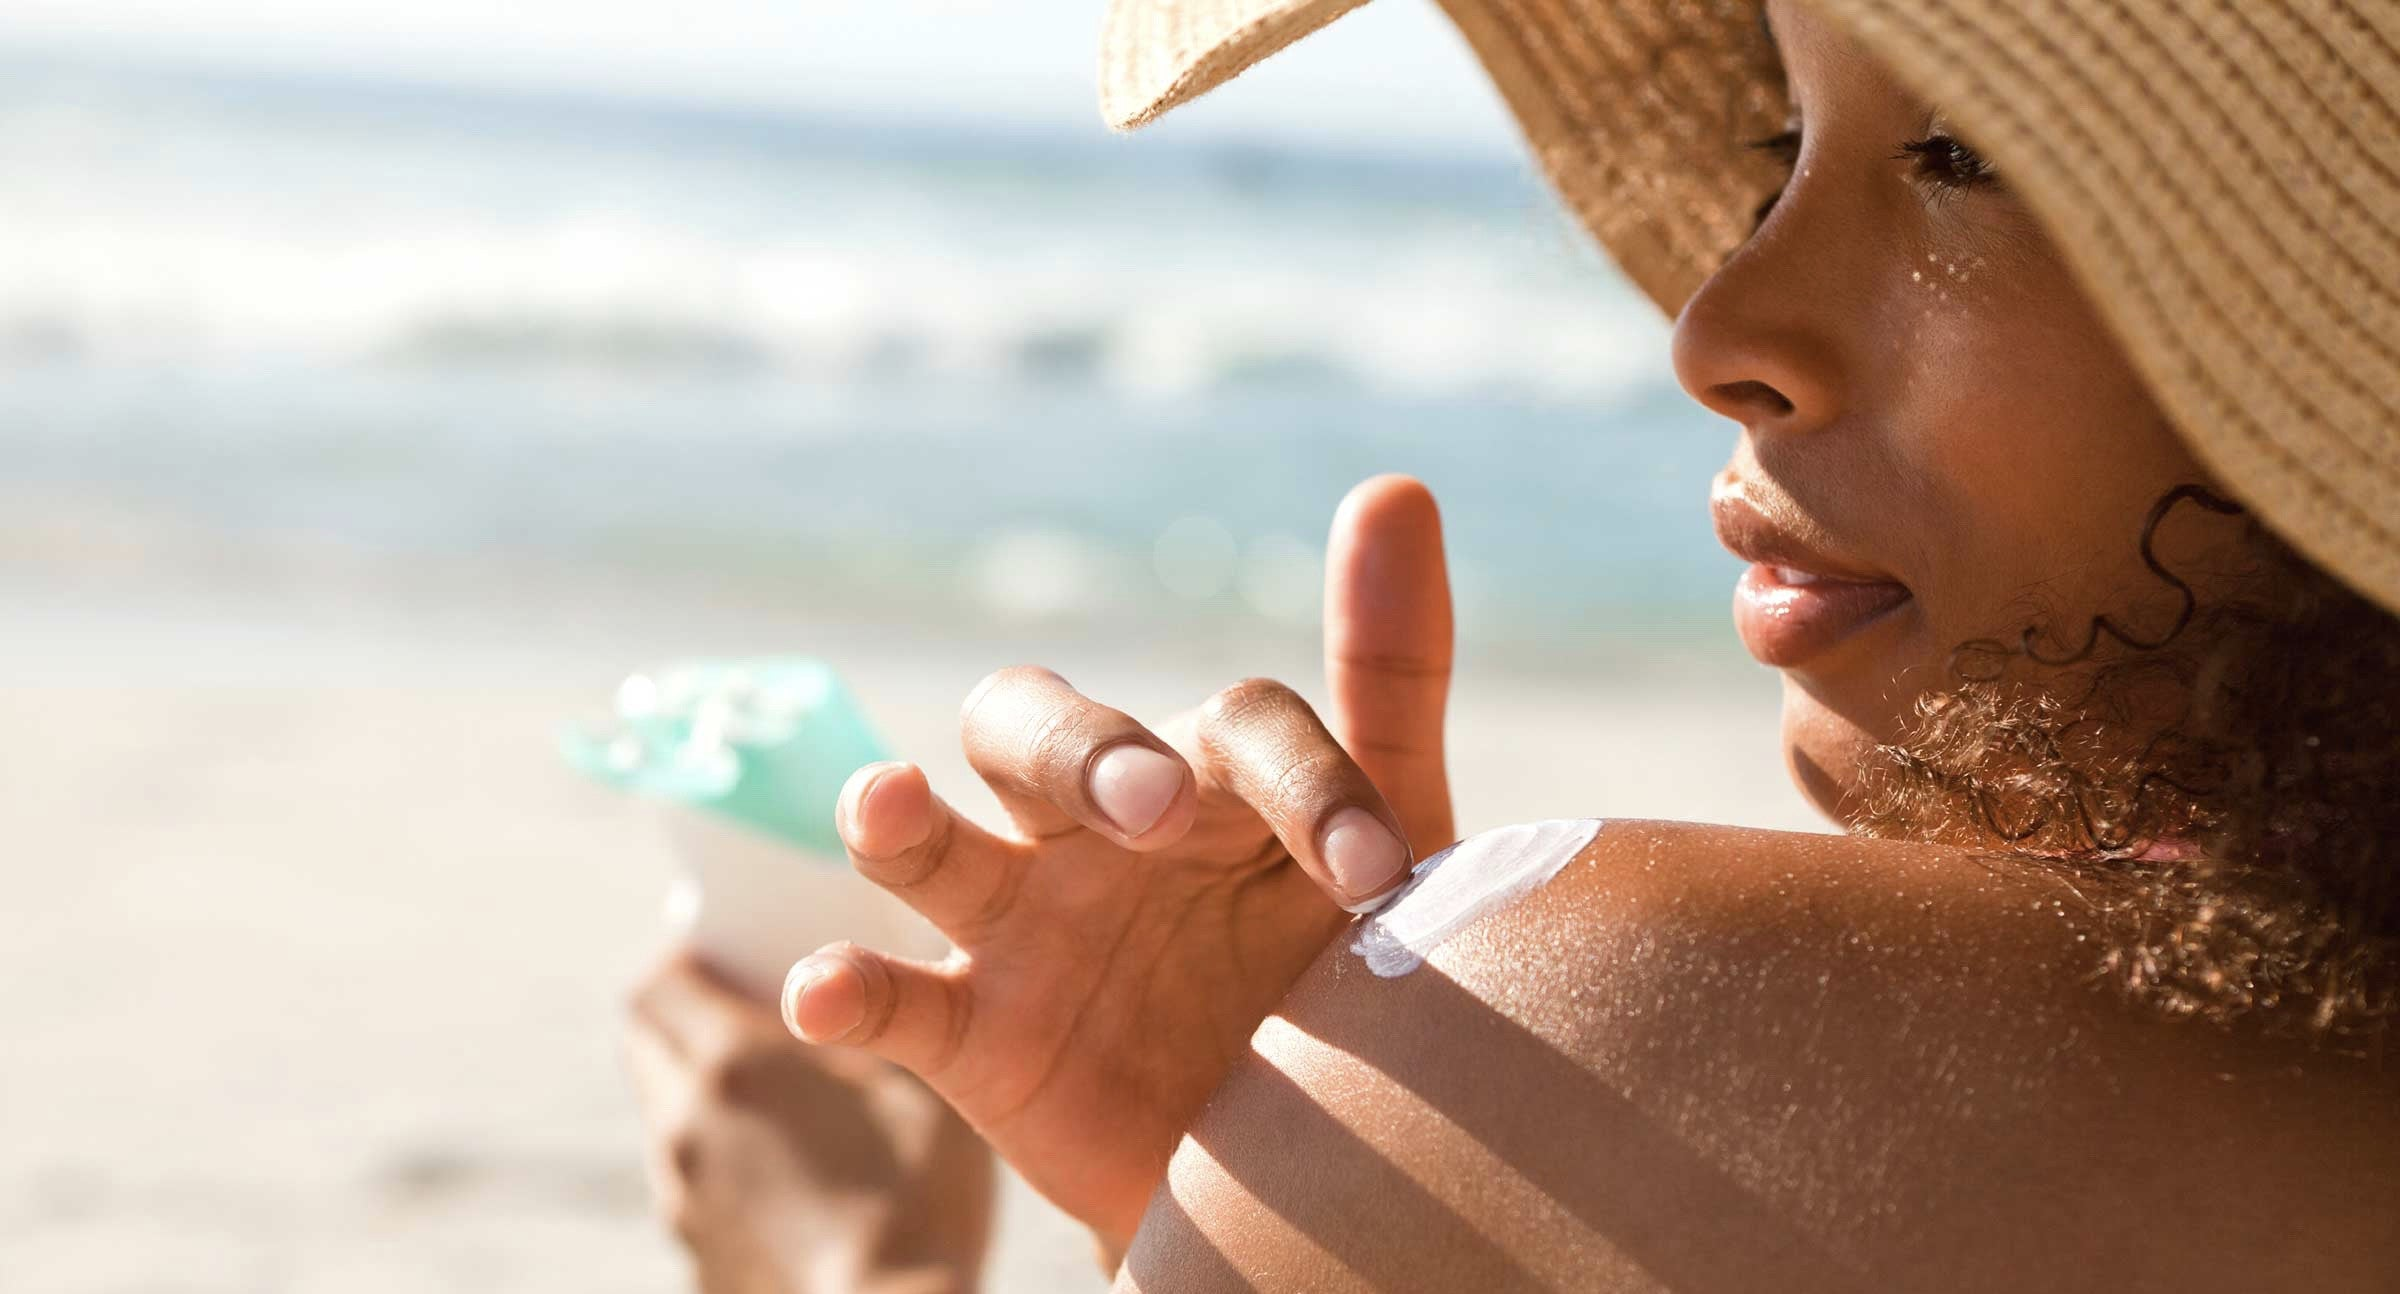 The Truth About Sunscreen, Choose Wisely